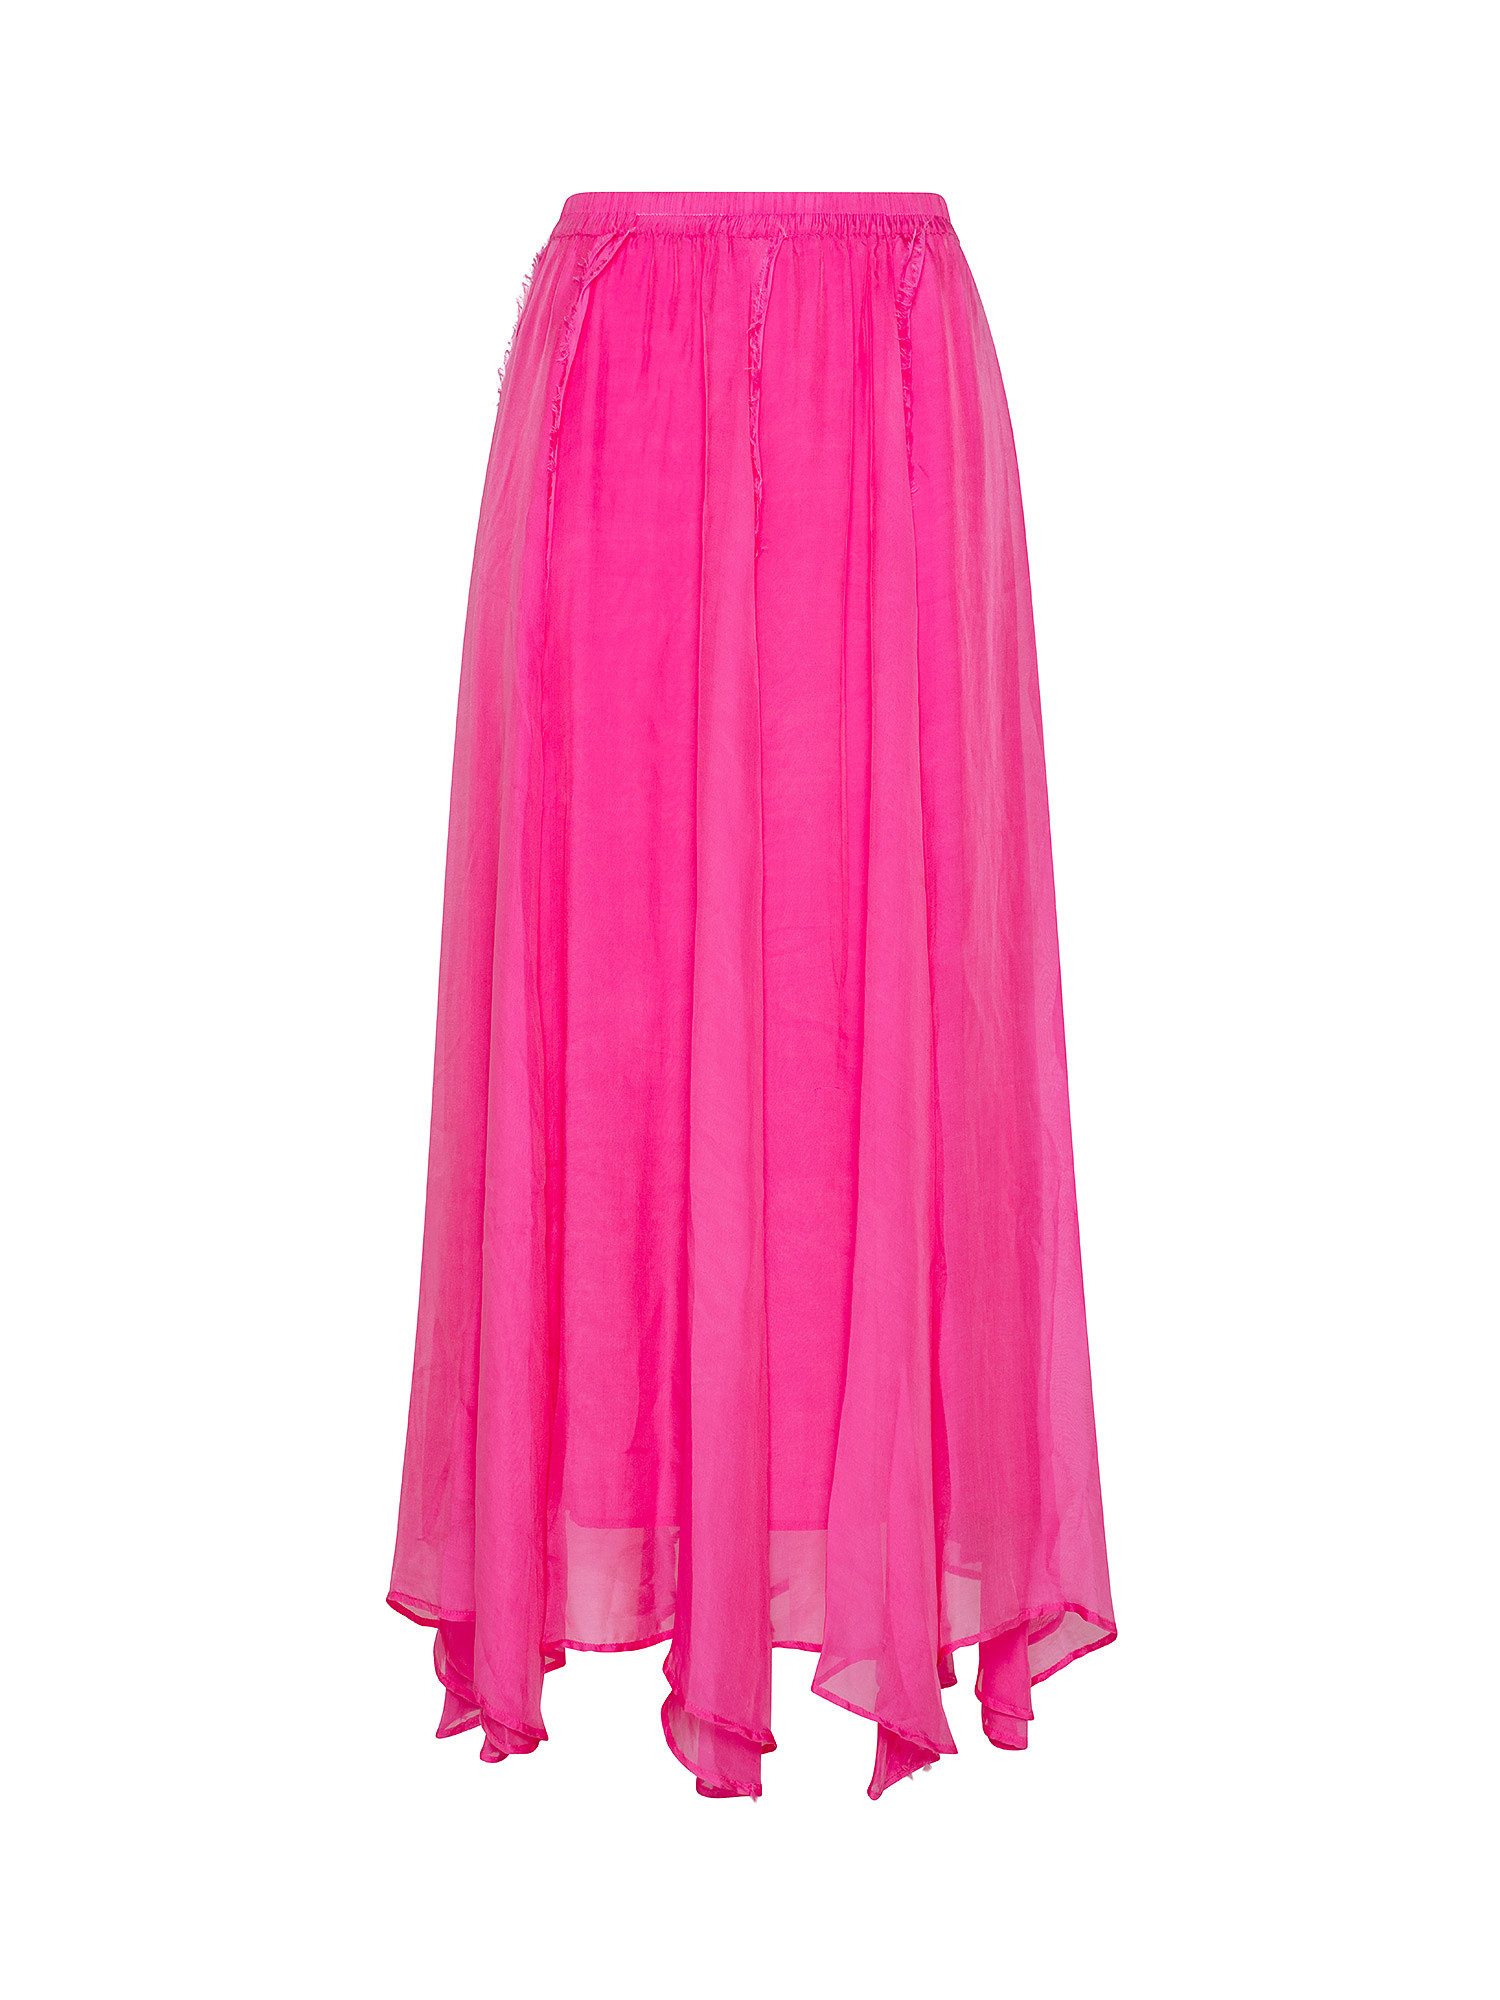 Gonna in chiffon  Chili, Rosa fuxia, large image number 0